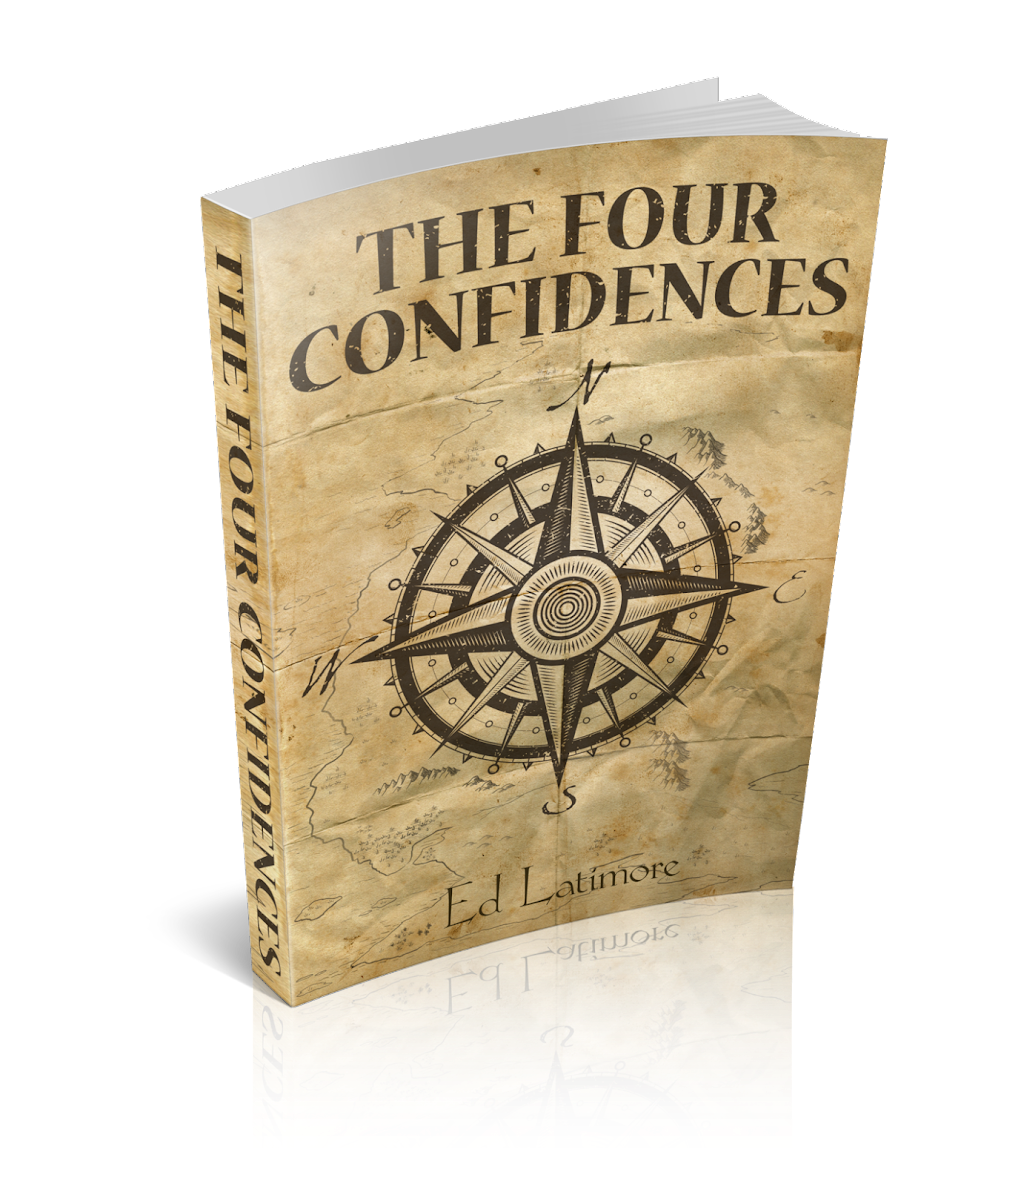 The Four Confidences